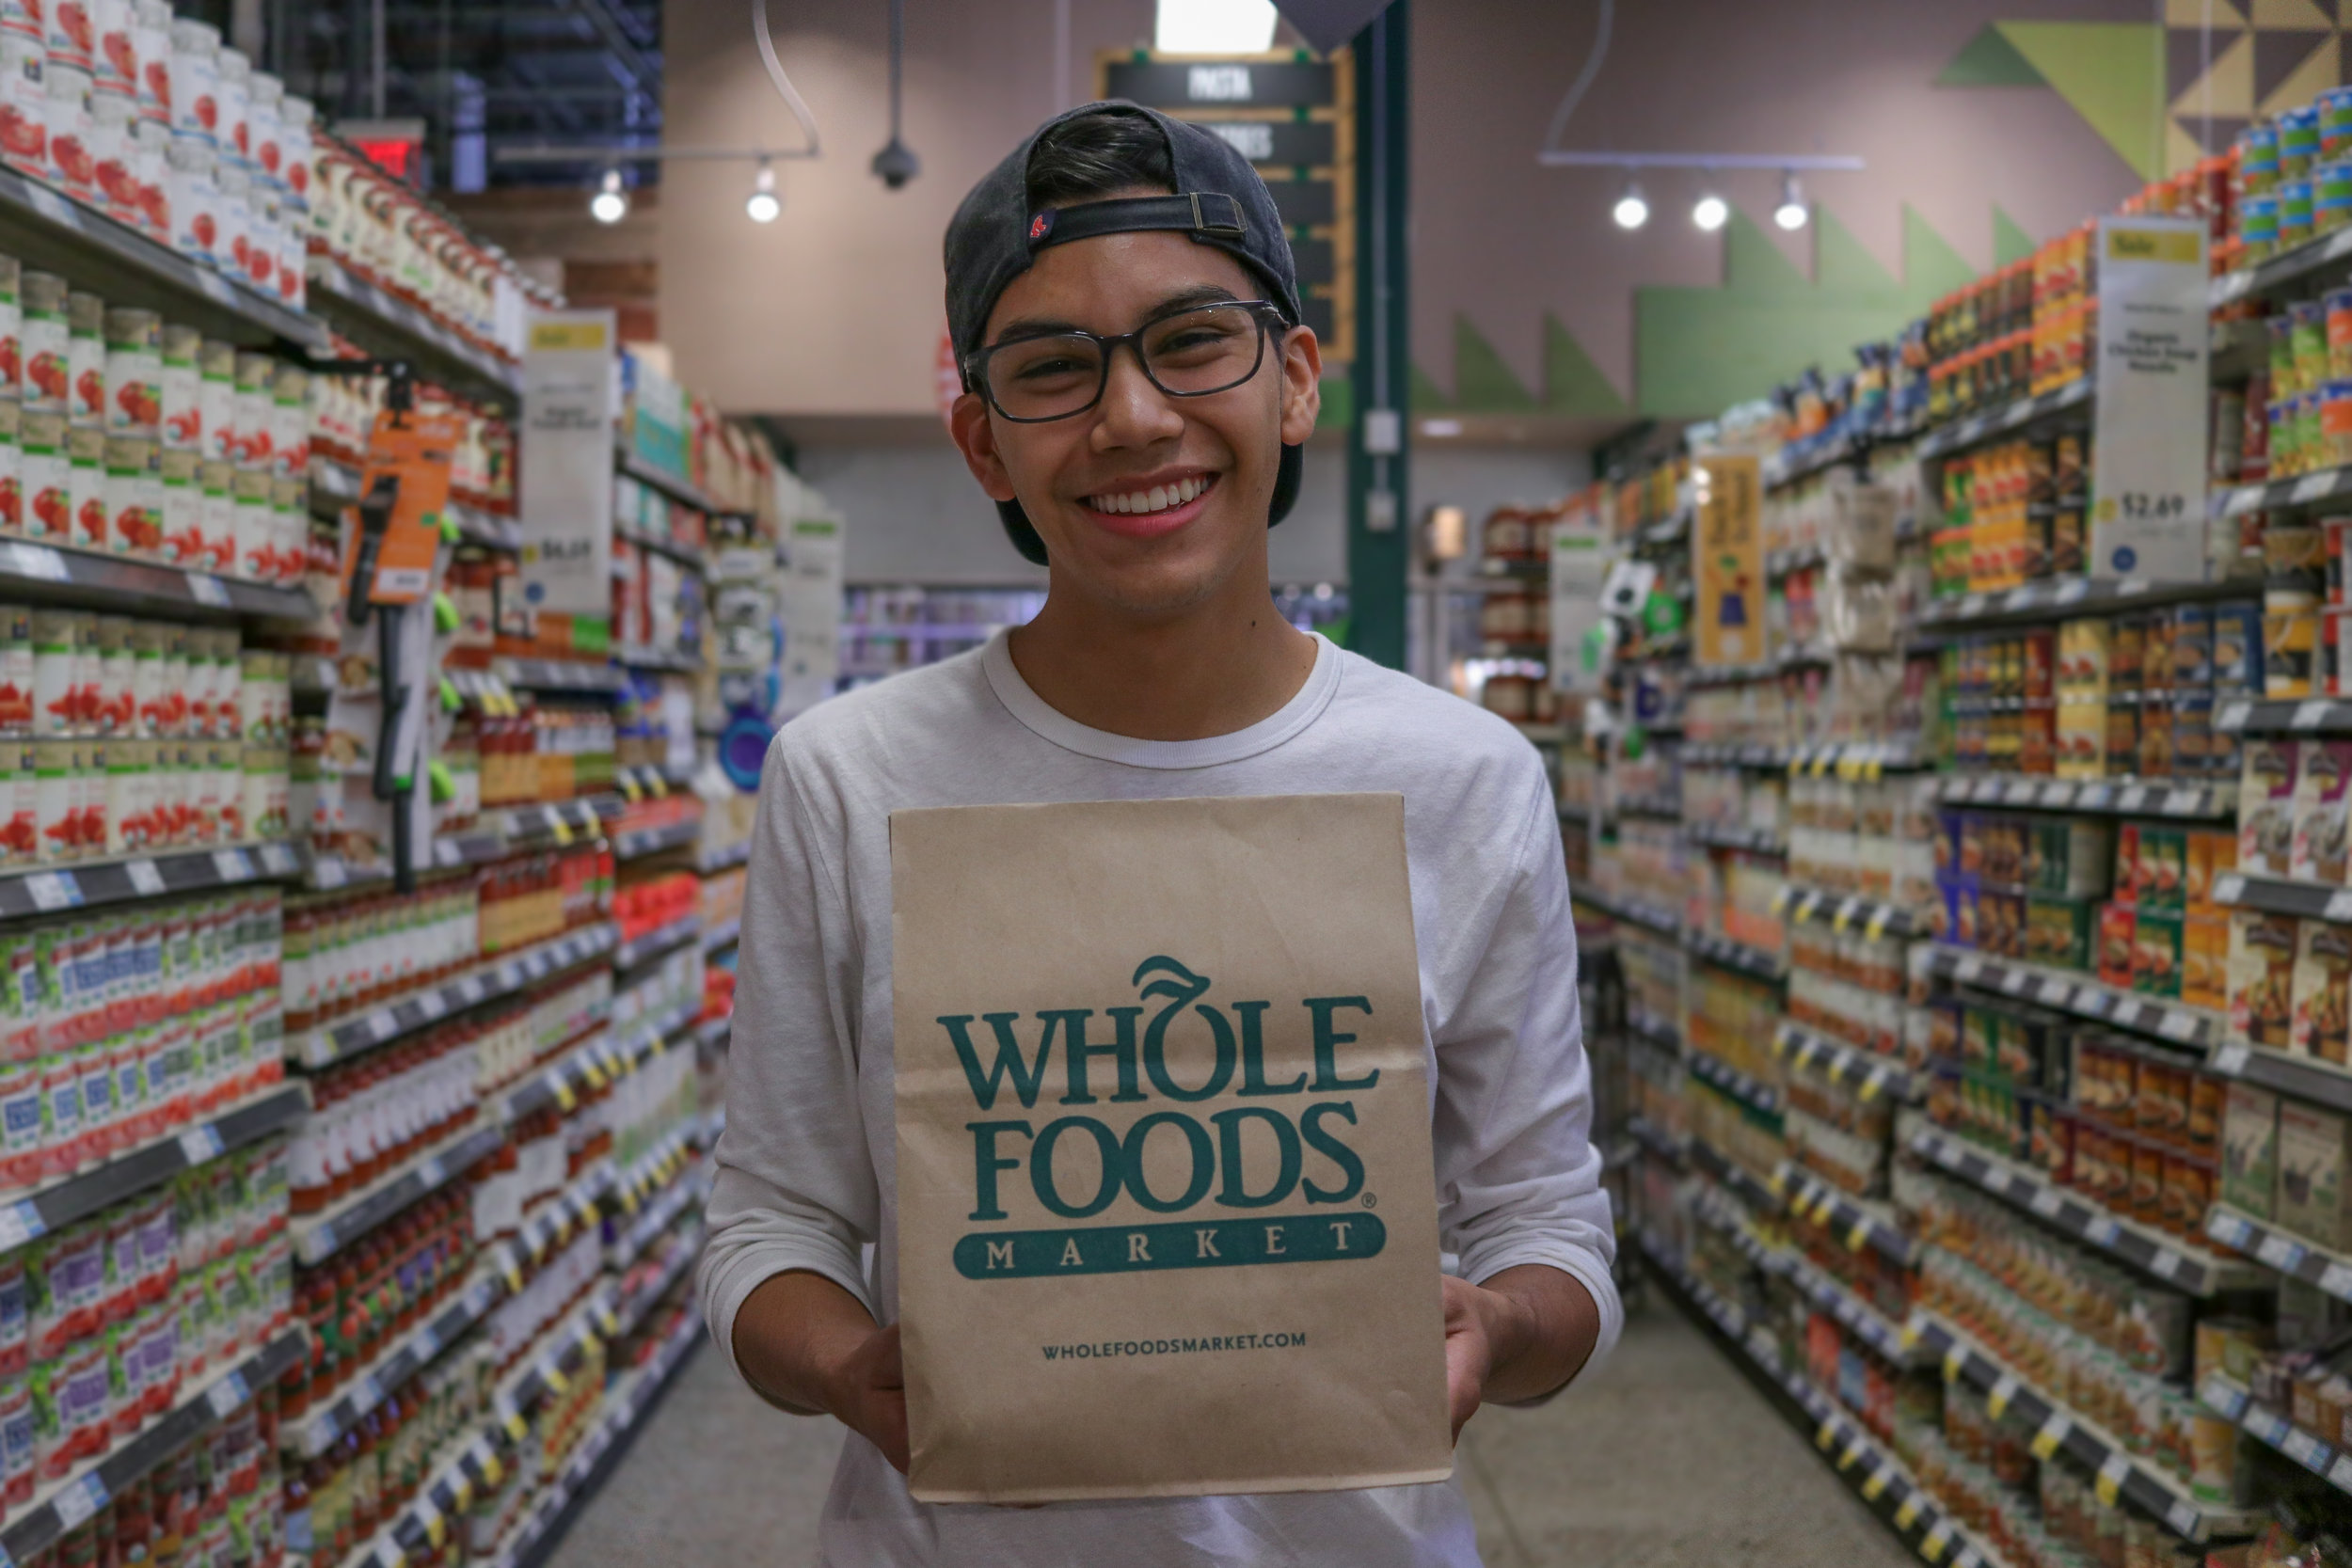 Whole Foods, now able to fit even the most student-sized of budgets. PC: Sally Becker